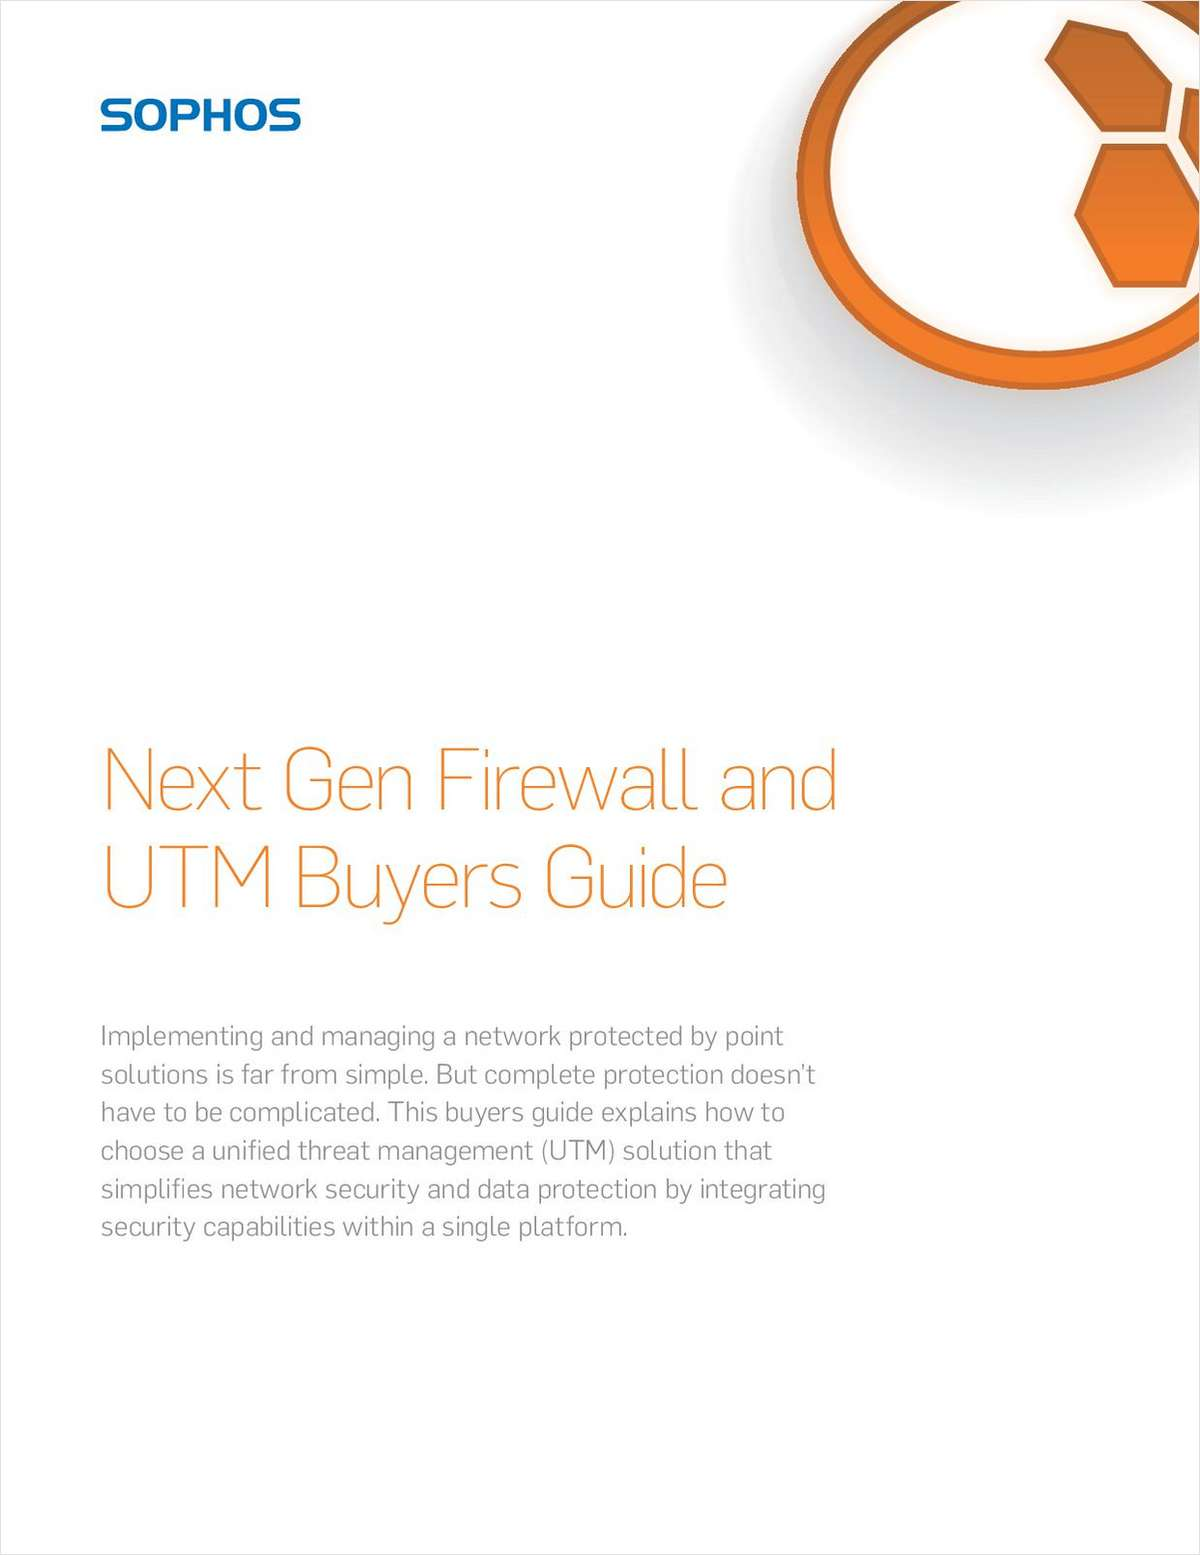 Next Gen Firewall and UTM Buyers Guide